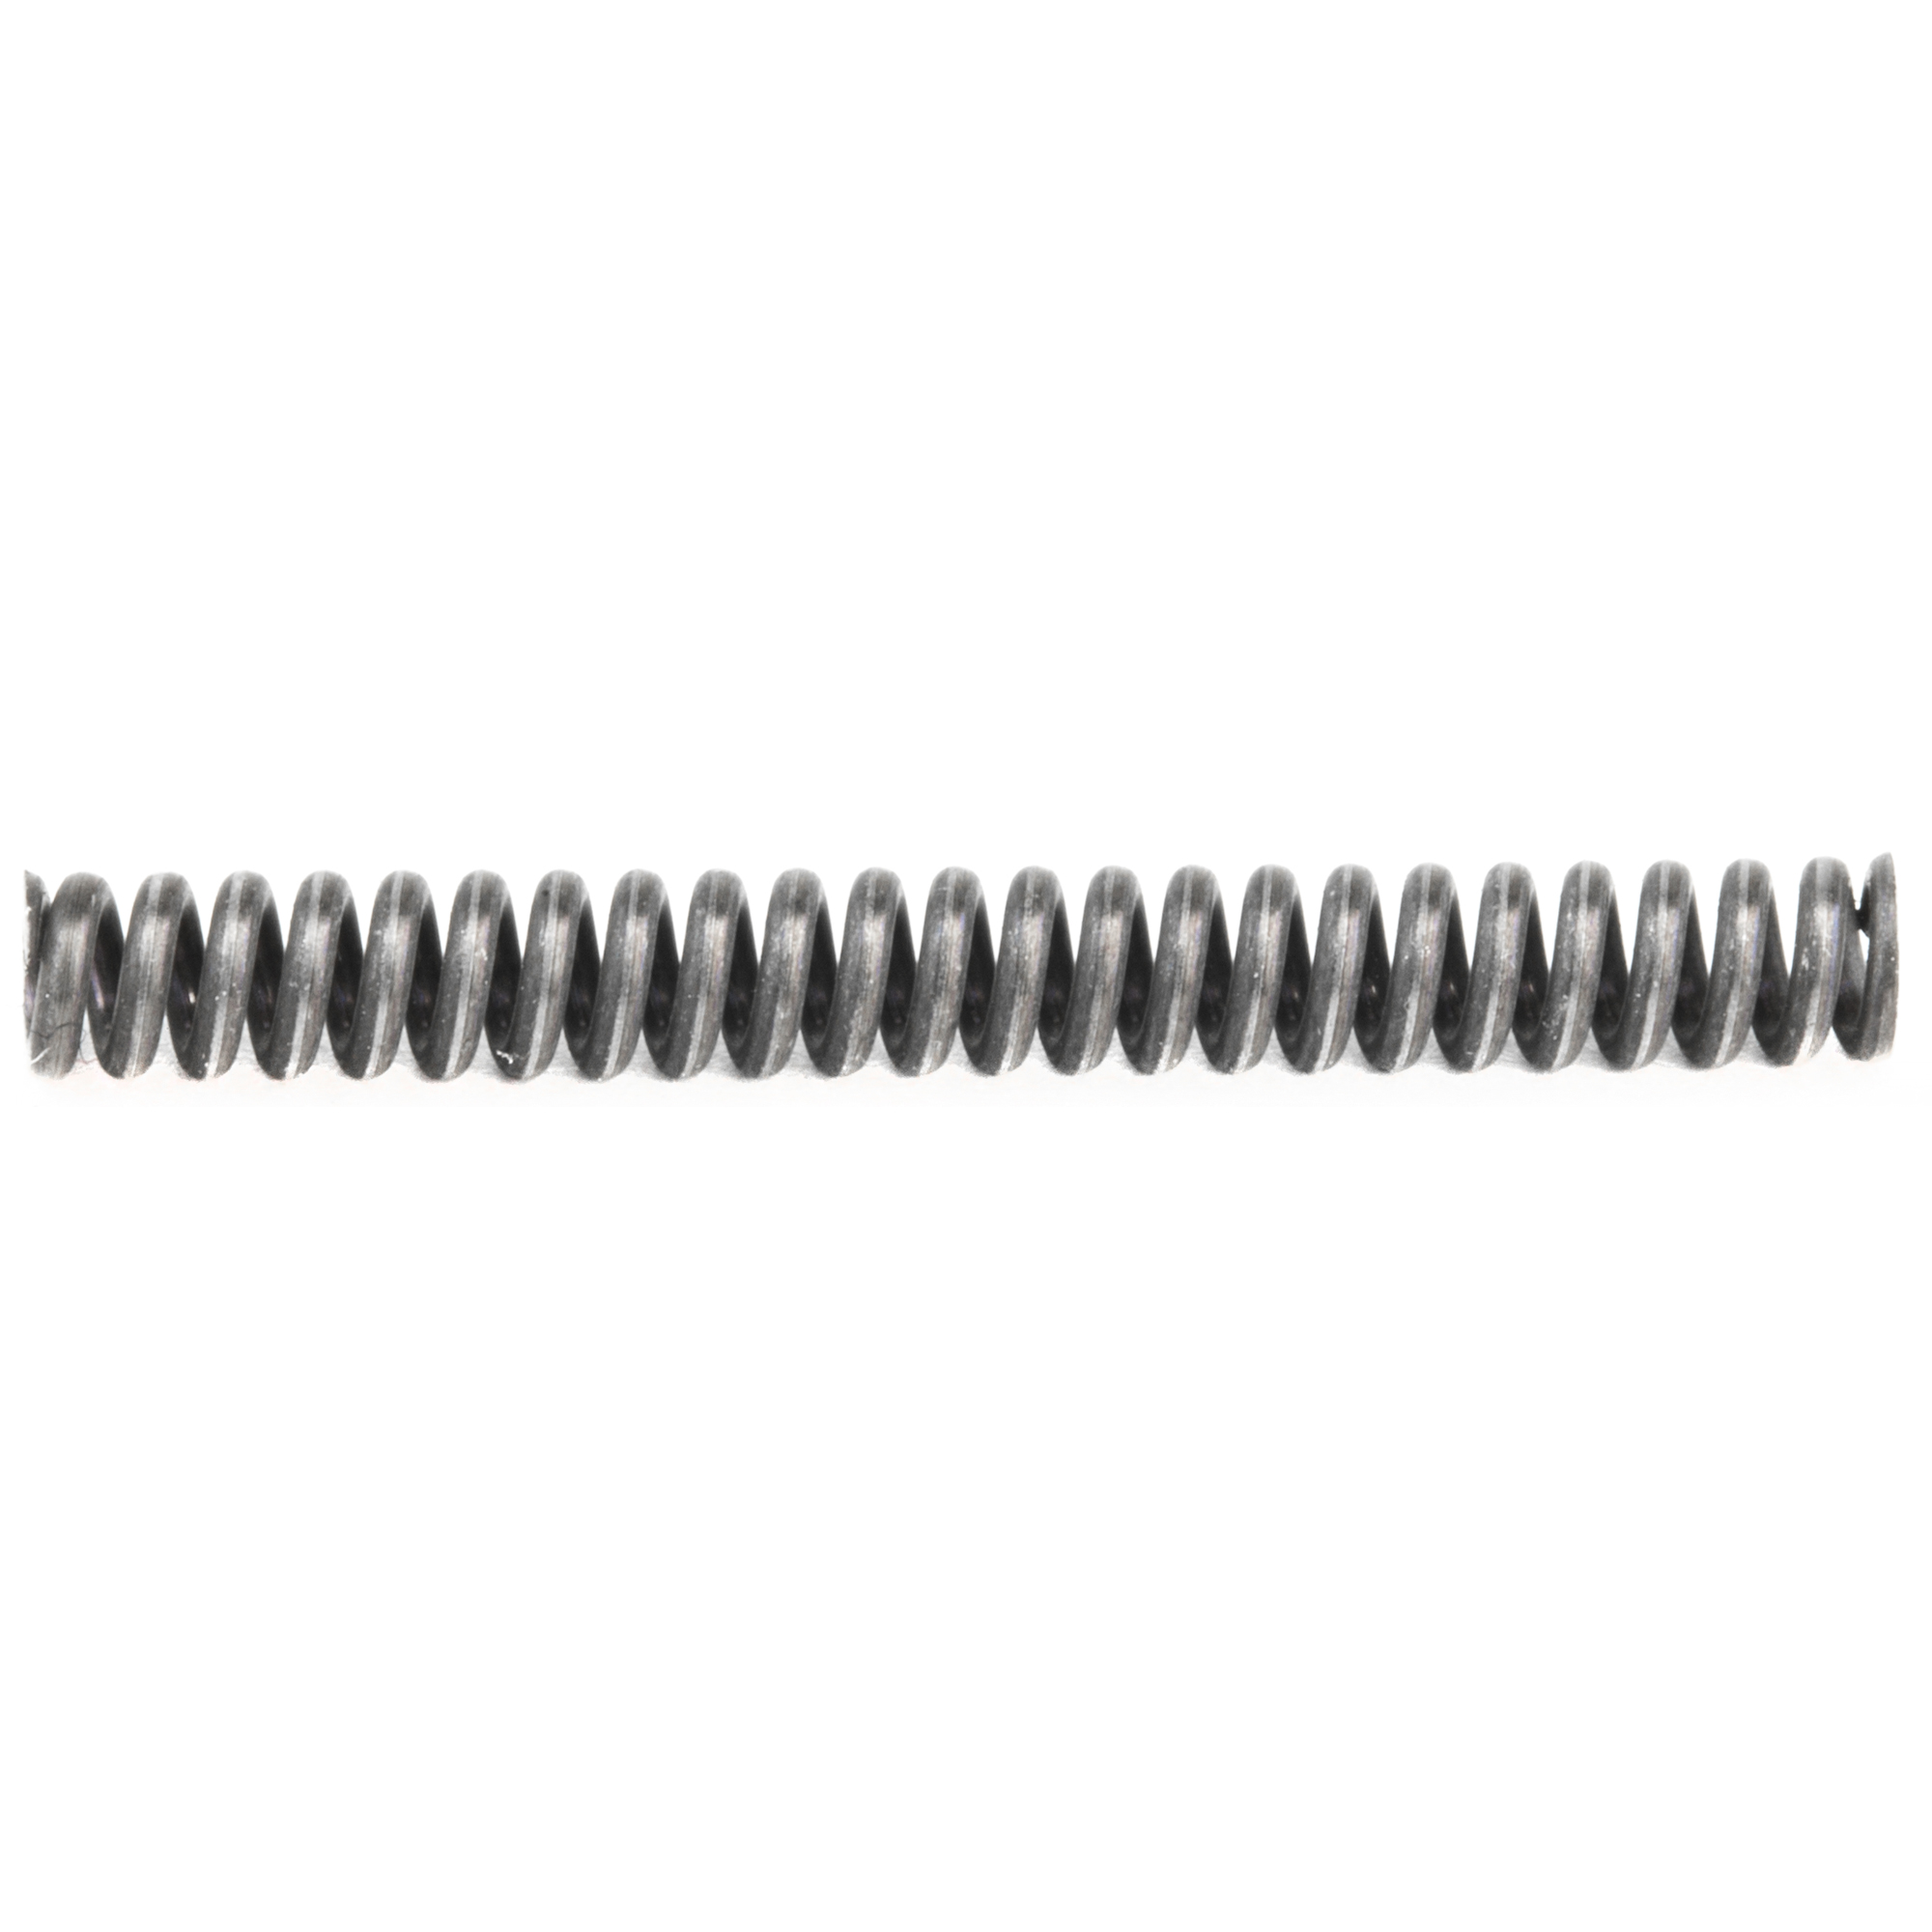 LBE AR15 Safety Selector Detent Spring